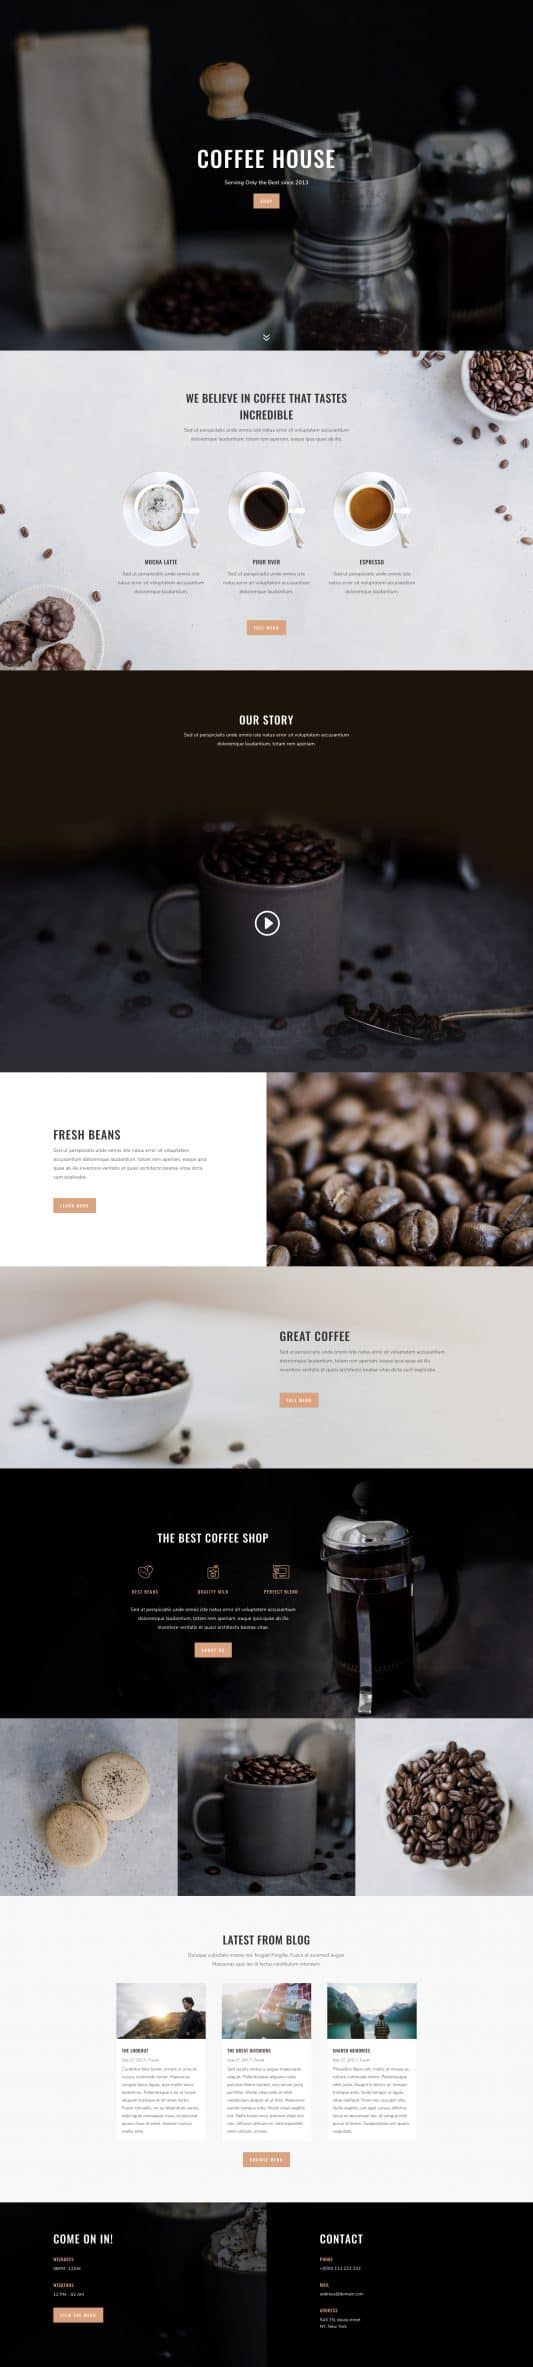 The Coffee Shop Page Style: Homepage Design 1